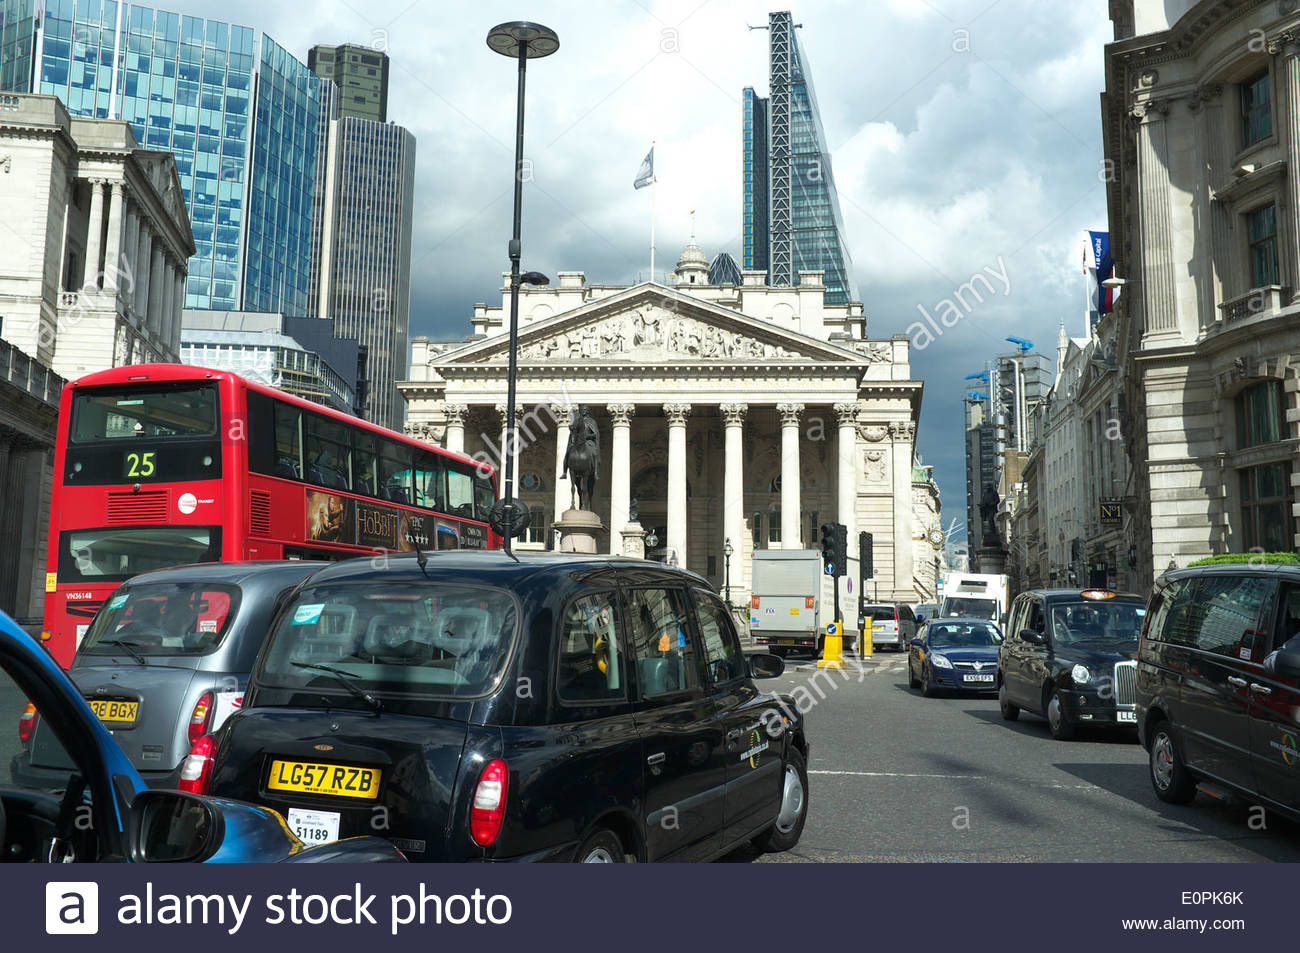 Traffic congestion in front of The Royal Exchange (in between Threadneedle & Cornhill streets), in London, UK. - Stock Image